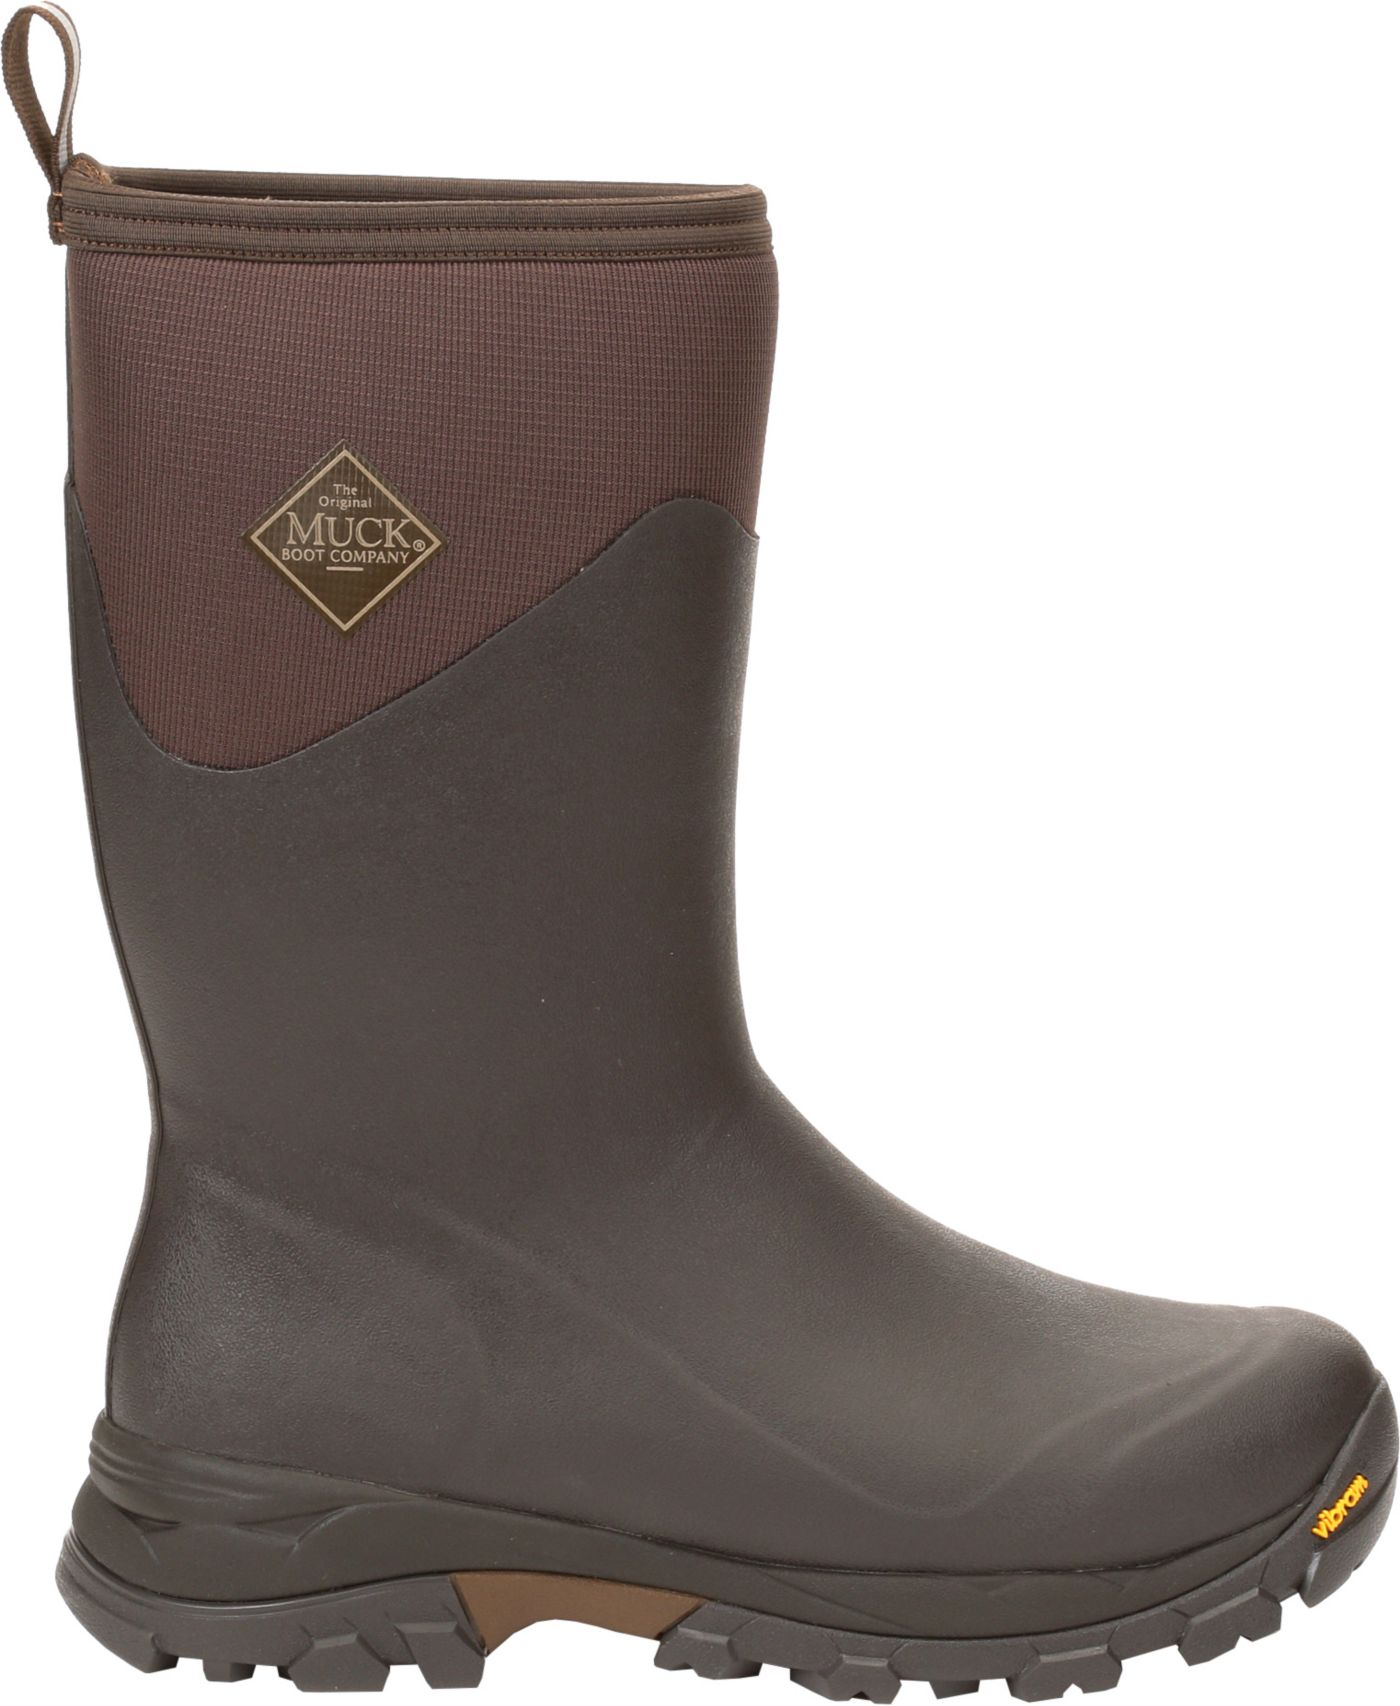 Muck Boots Men's Arctic Ice Mid Winter Boots